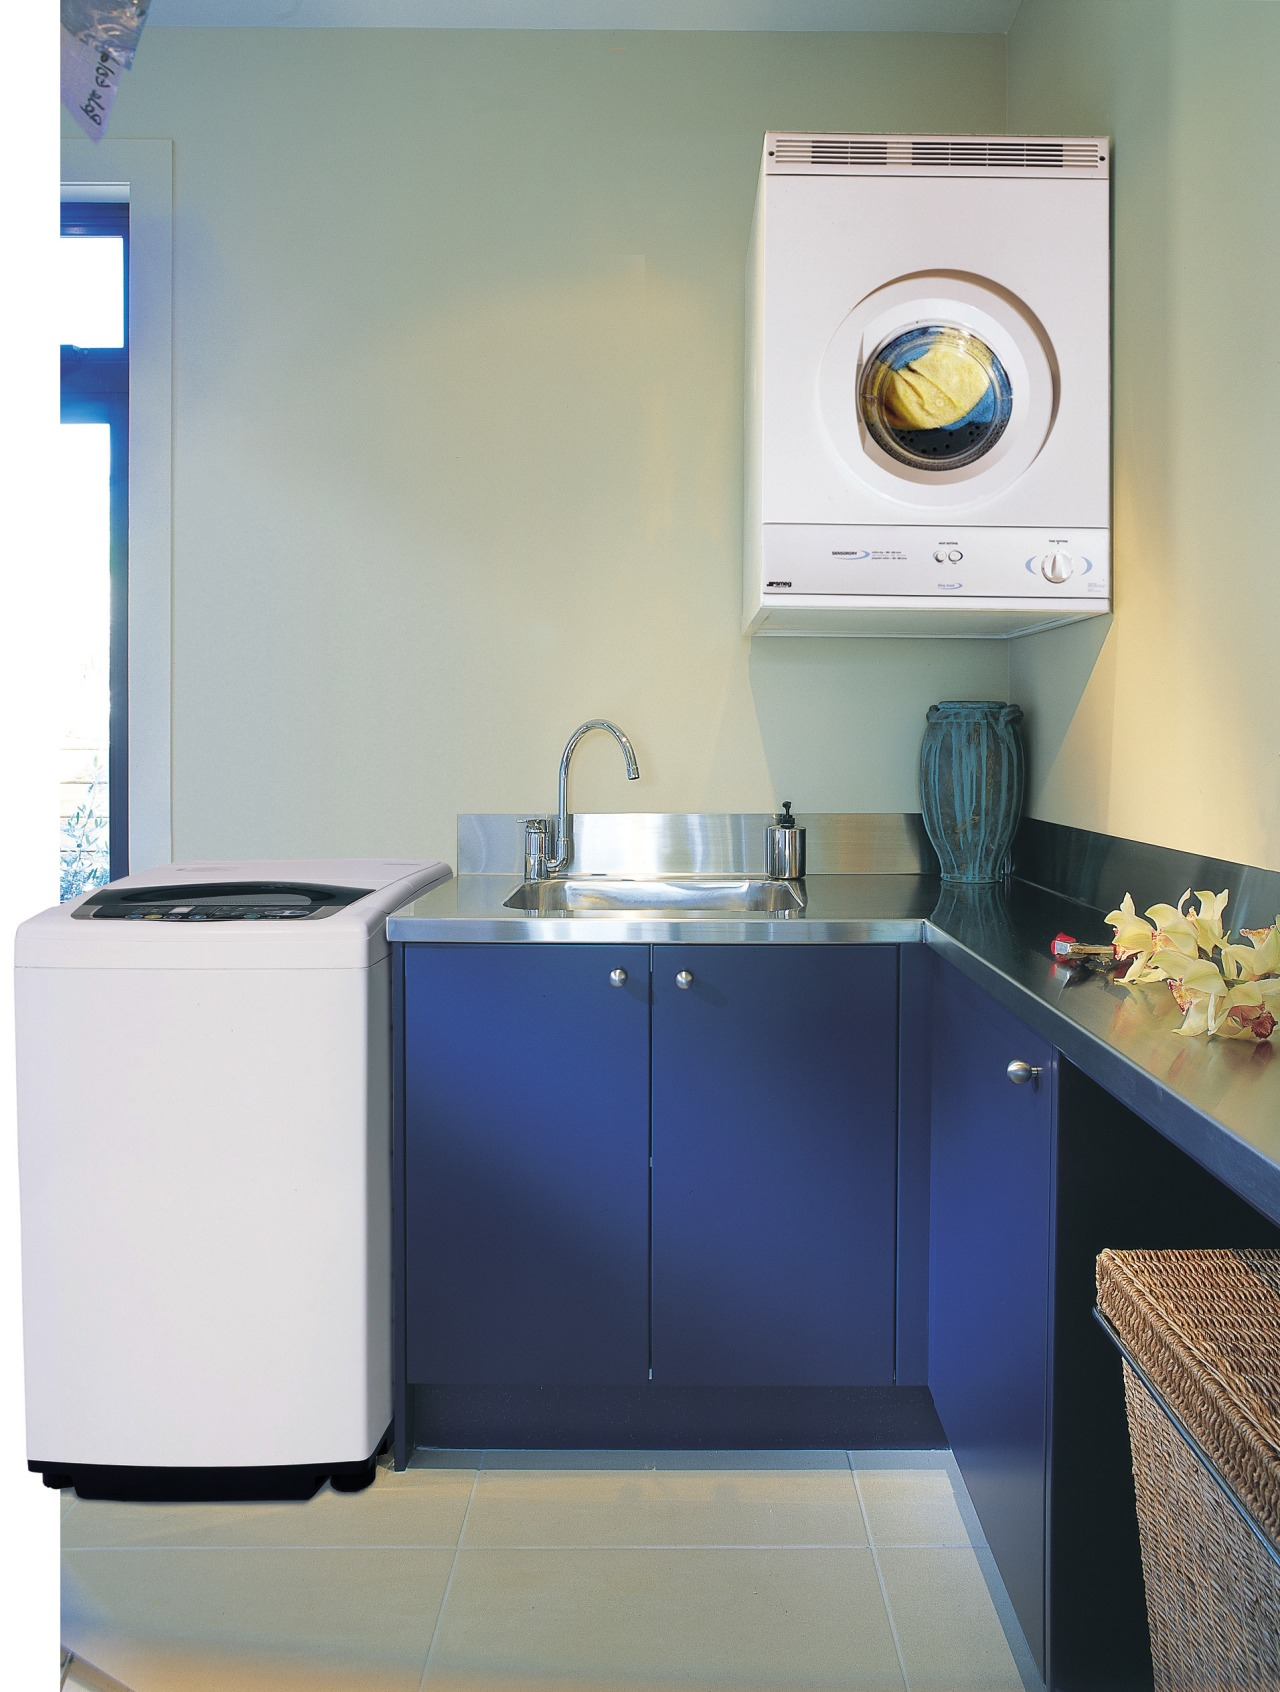 A laundry featuring a Smeg washing machine and bathroom, clothes dryer, home appliance, kitchen, laundry, laundry room, major appliance, product, product design, room, sink, washing machine, gray